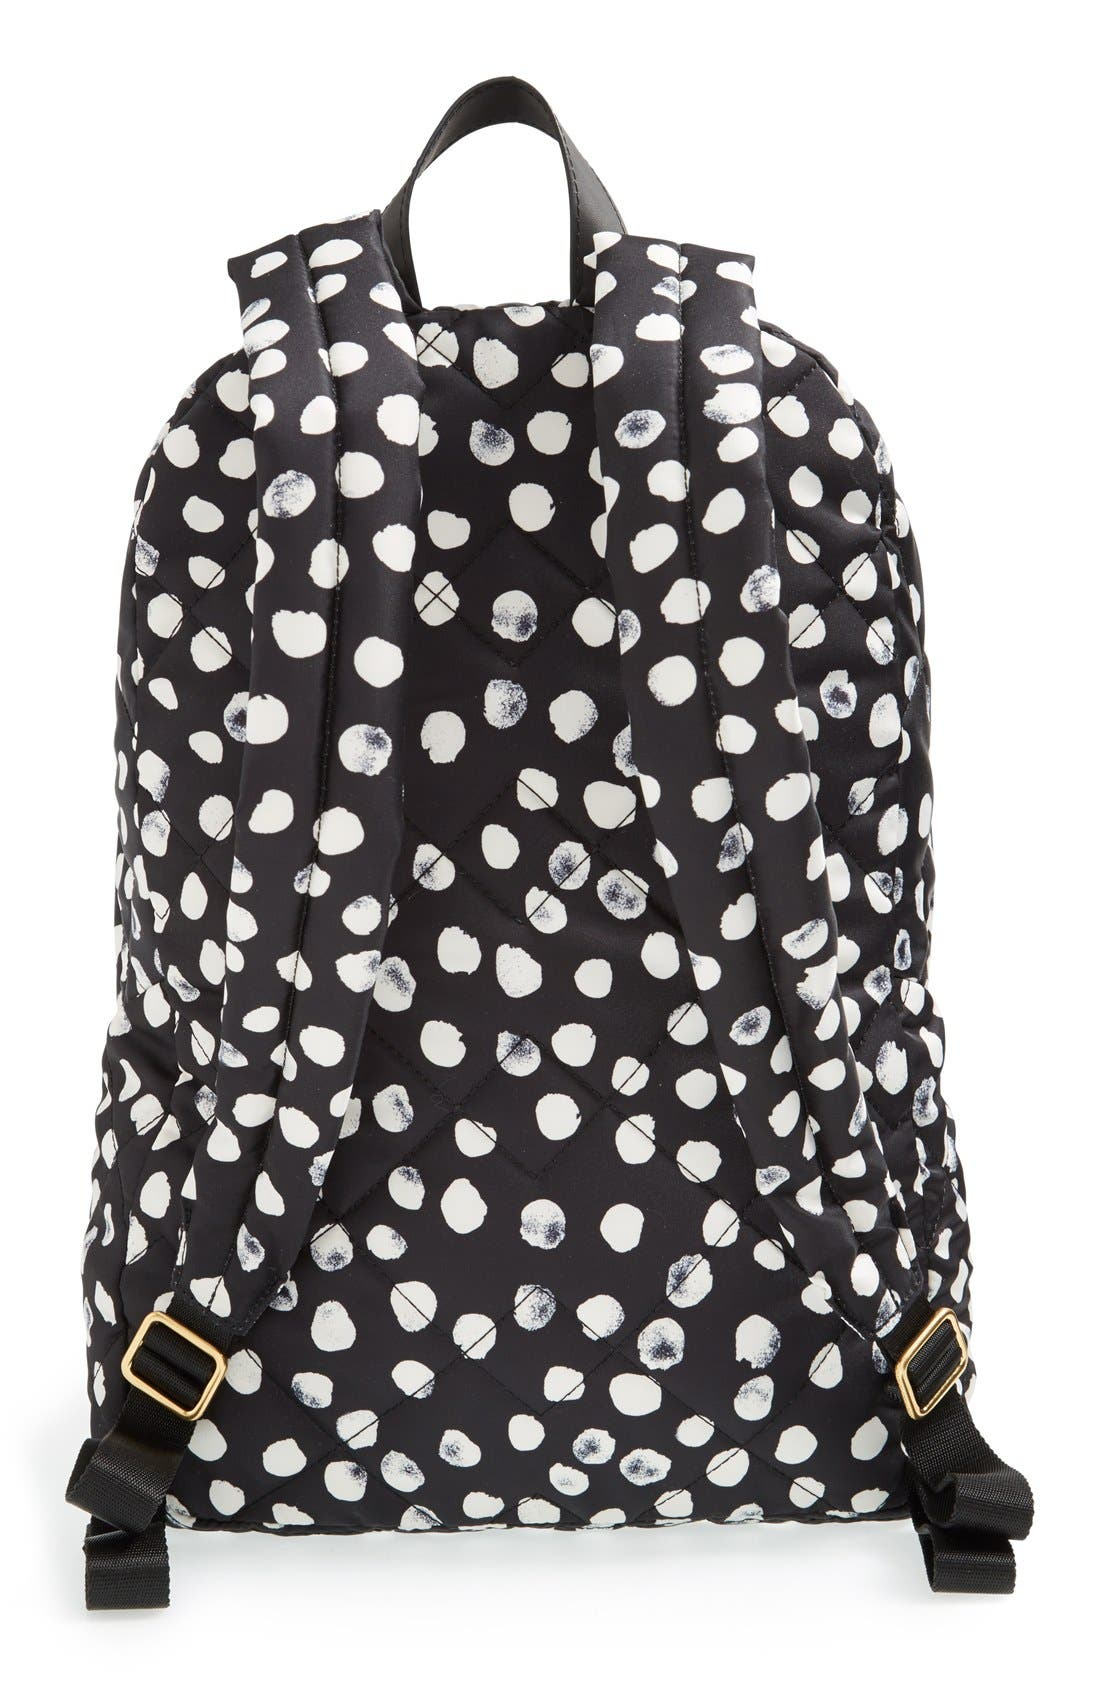 MARC JACOBS, MARC BY MARC JACOBS 'Crosby' Quilted Backpack, Alternate thumbnail 2, color, 001